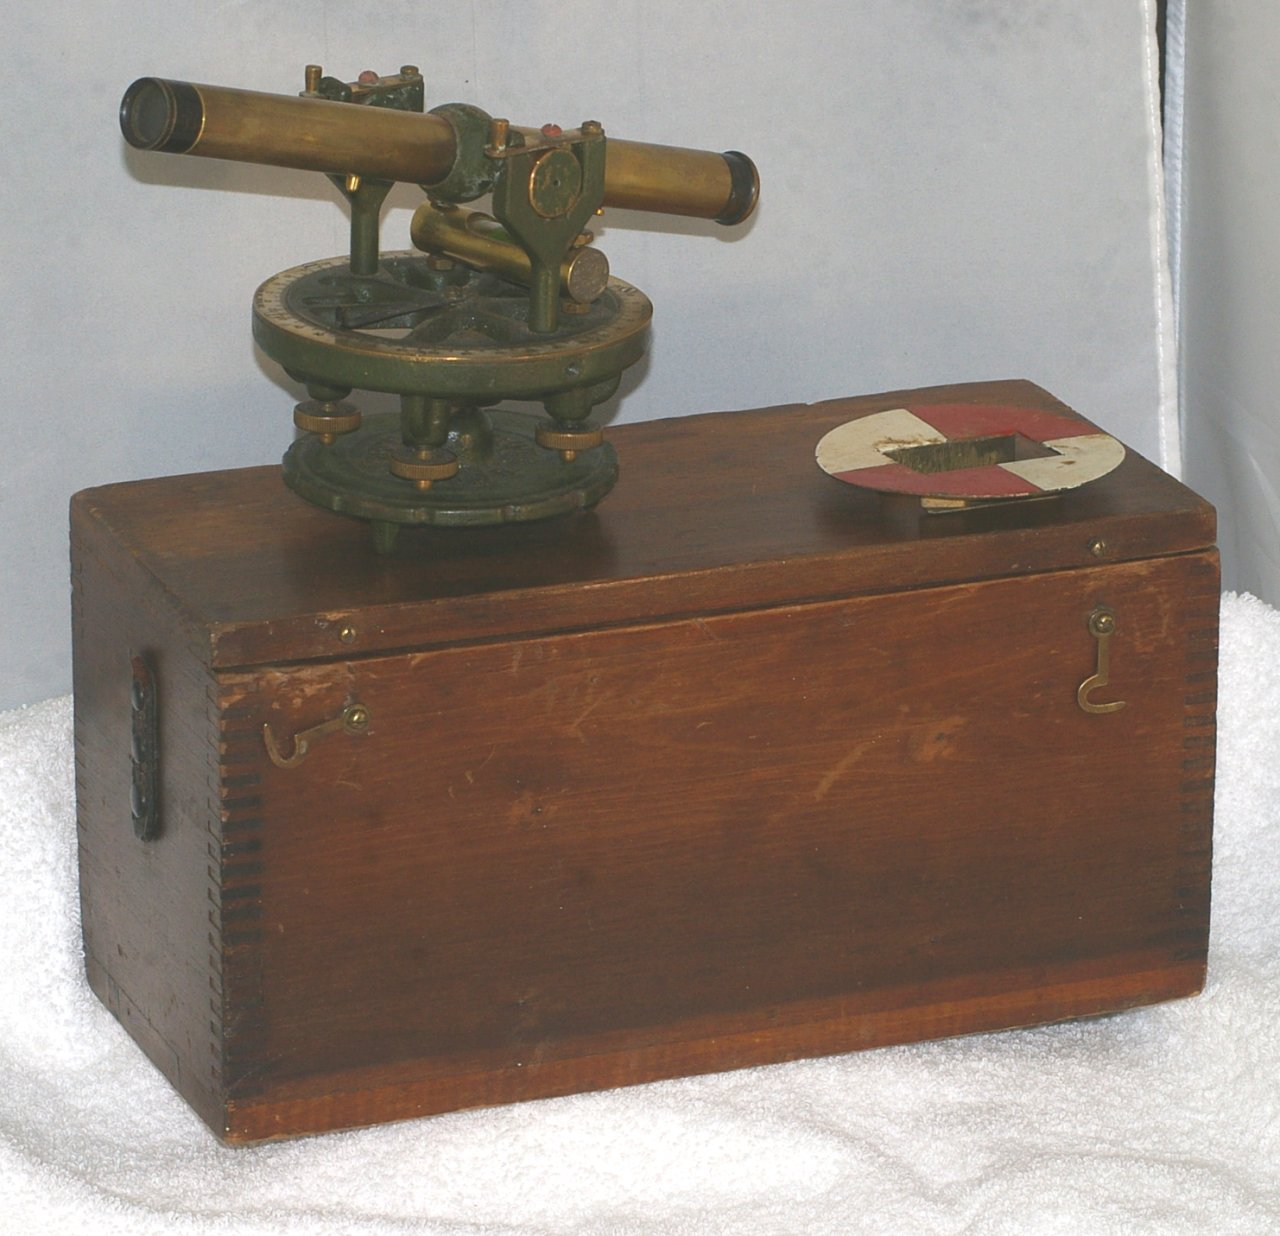 Geier & Bluhm Surveyors Transit or Theodolite in case from 1925